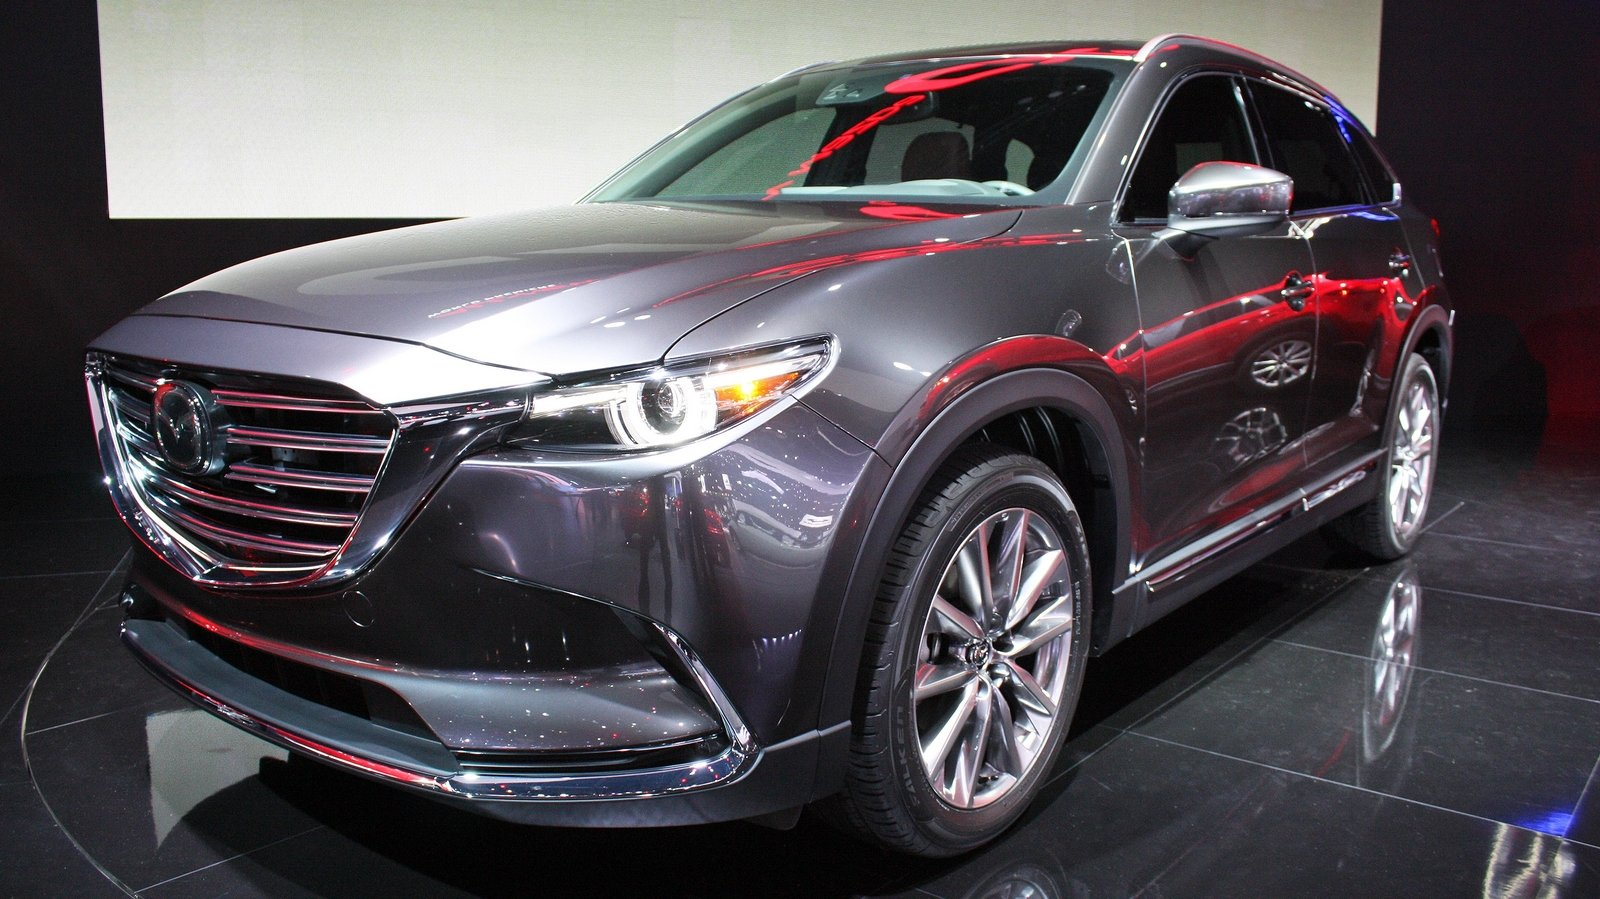 2017 Mazda CX-9 - Picture 656985 | car review @ Top Speed